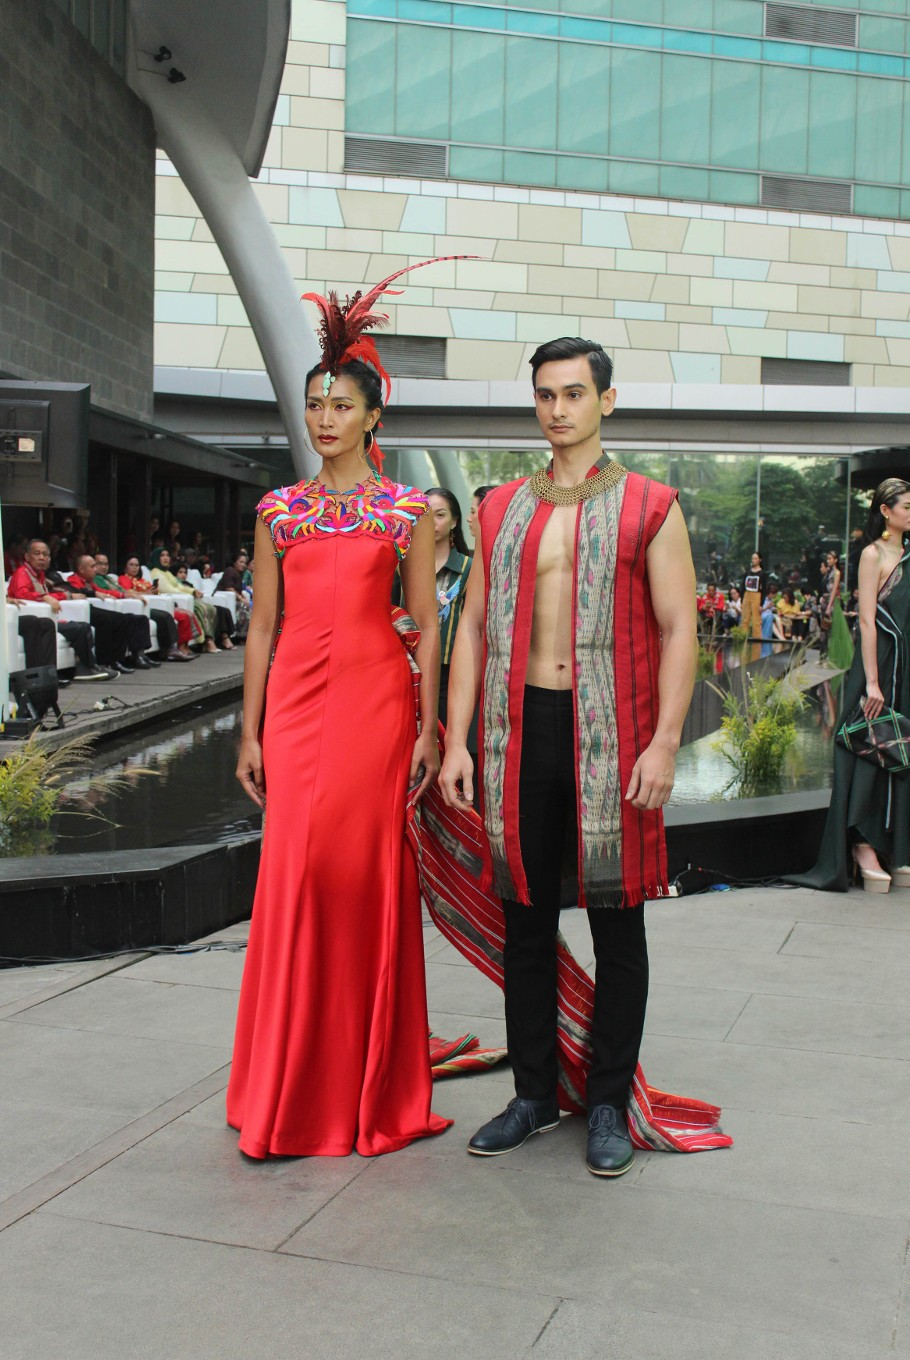 A pair of wedding outfits by Billy Tjong are modeled during the Serenade of Tenun Doyo' fashion show.